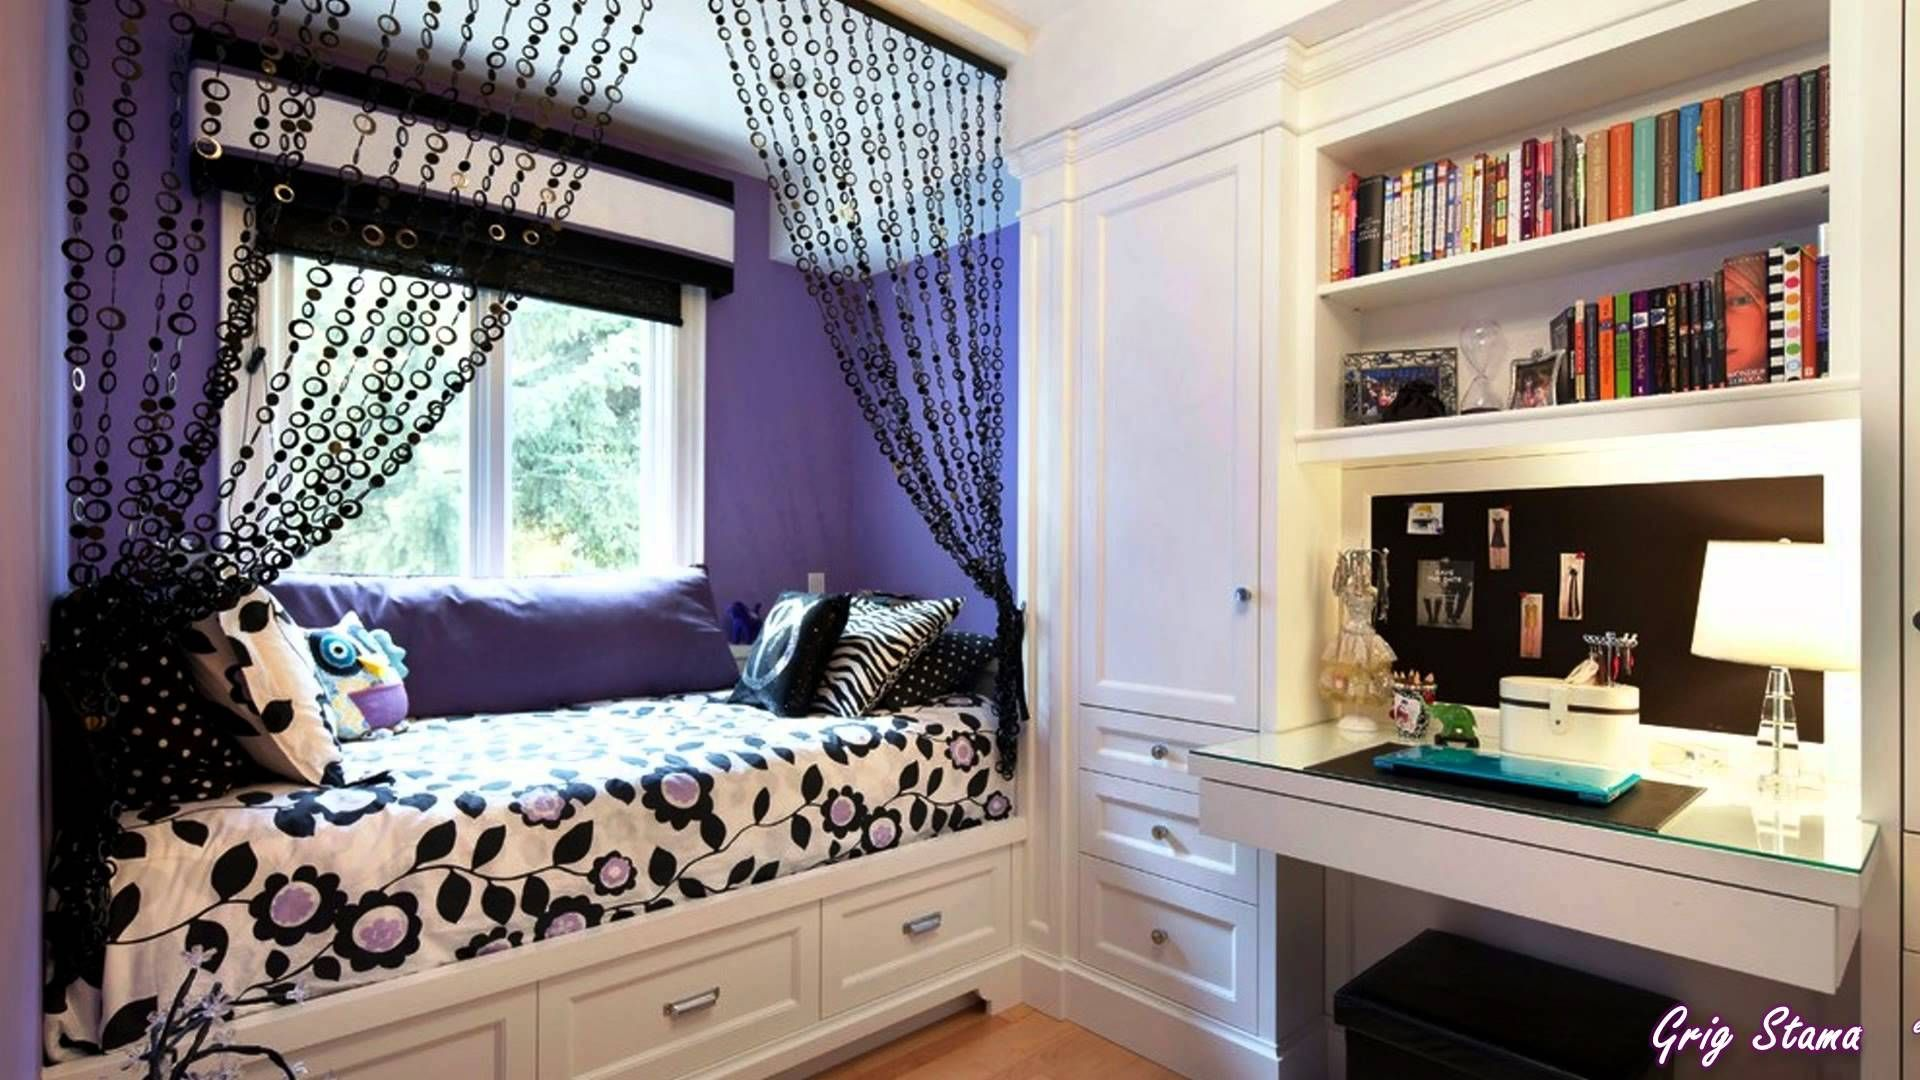 Bedroom designs ideas for teenage girls - Diy Teenage Girl Bedroom Decorating Ideas Maxresdefault Jpg Living Room